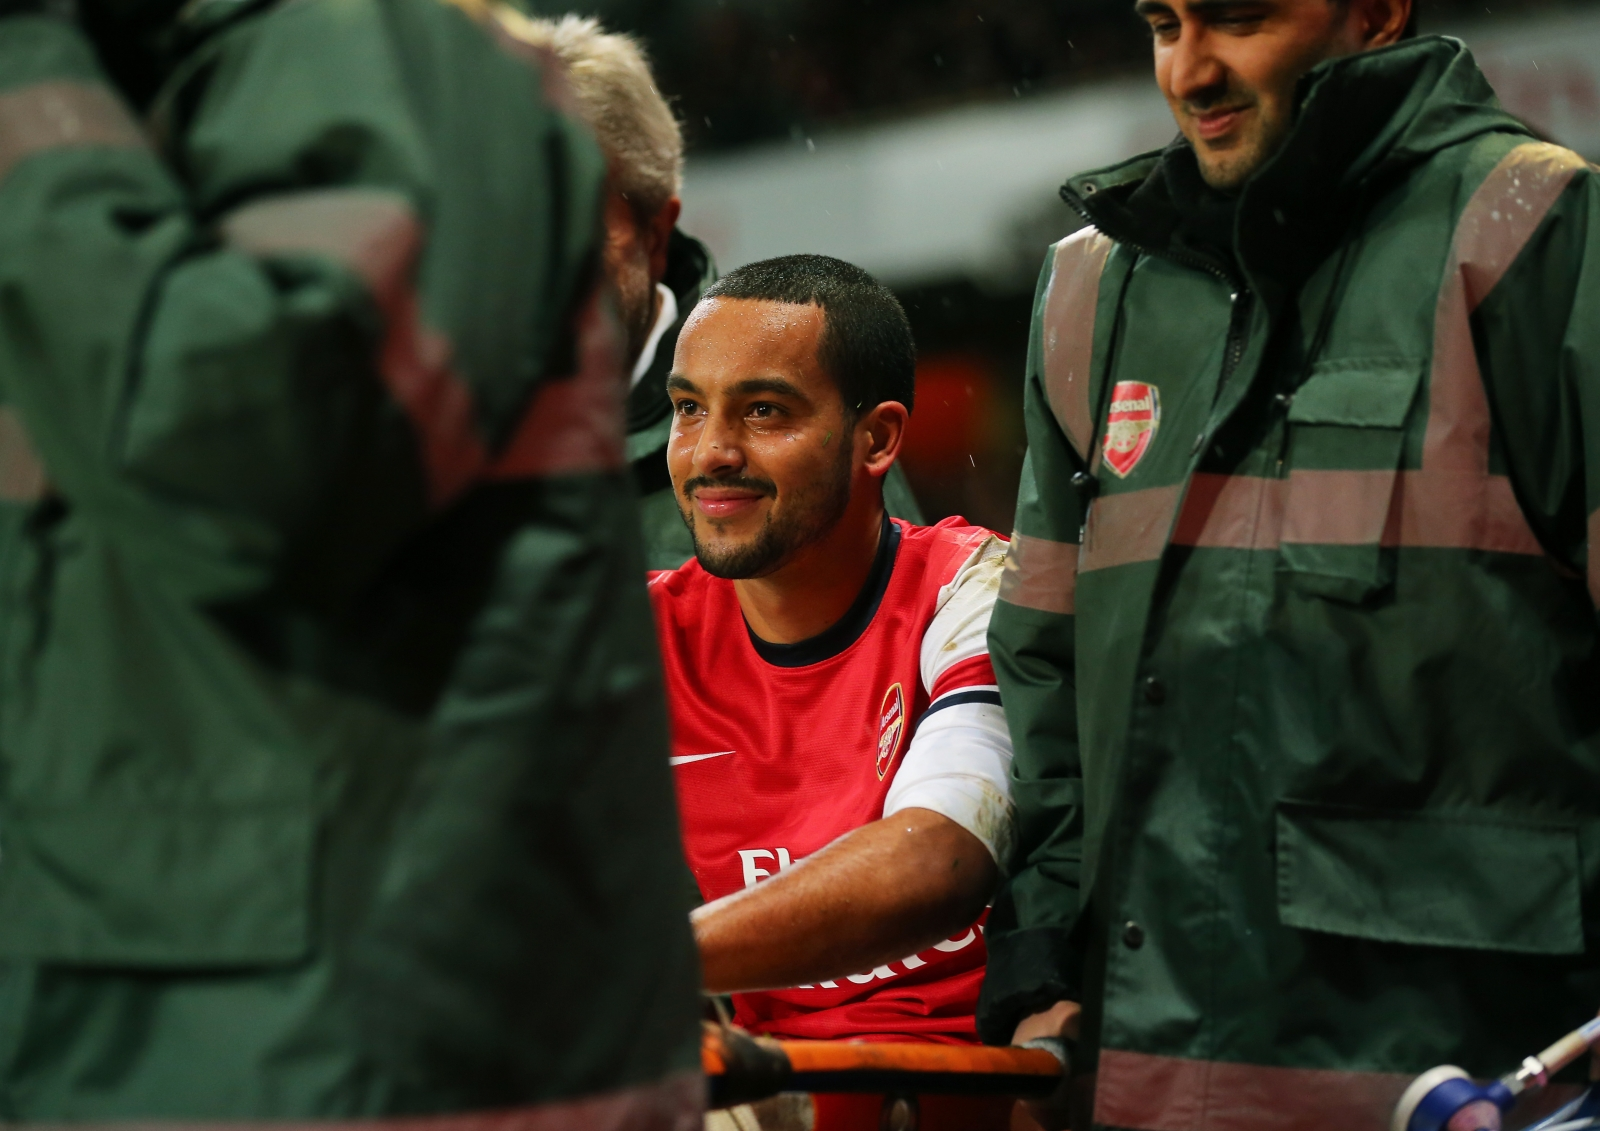 Theo Walcott knee injury Jan 2014